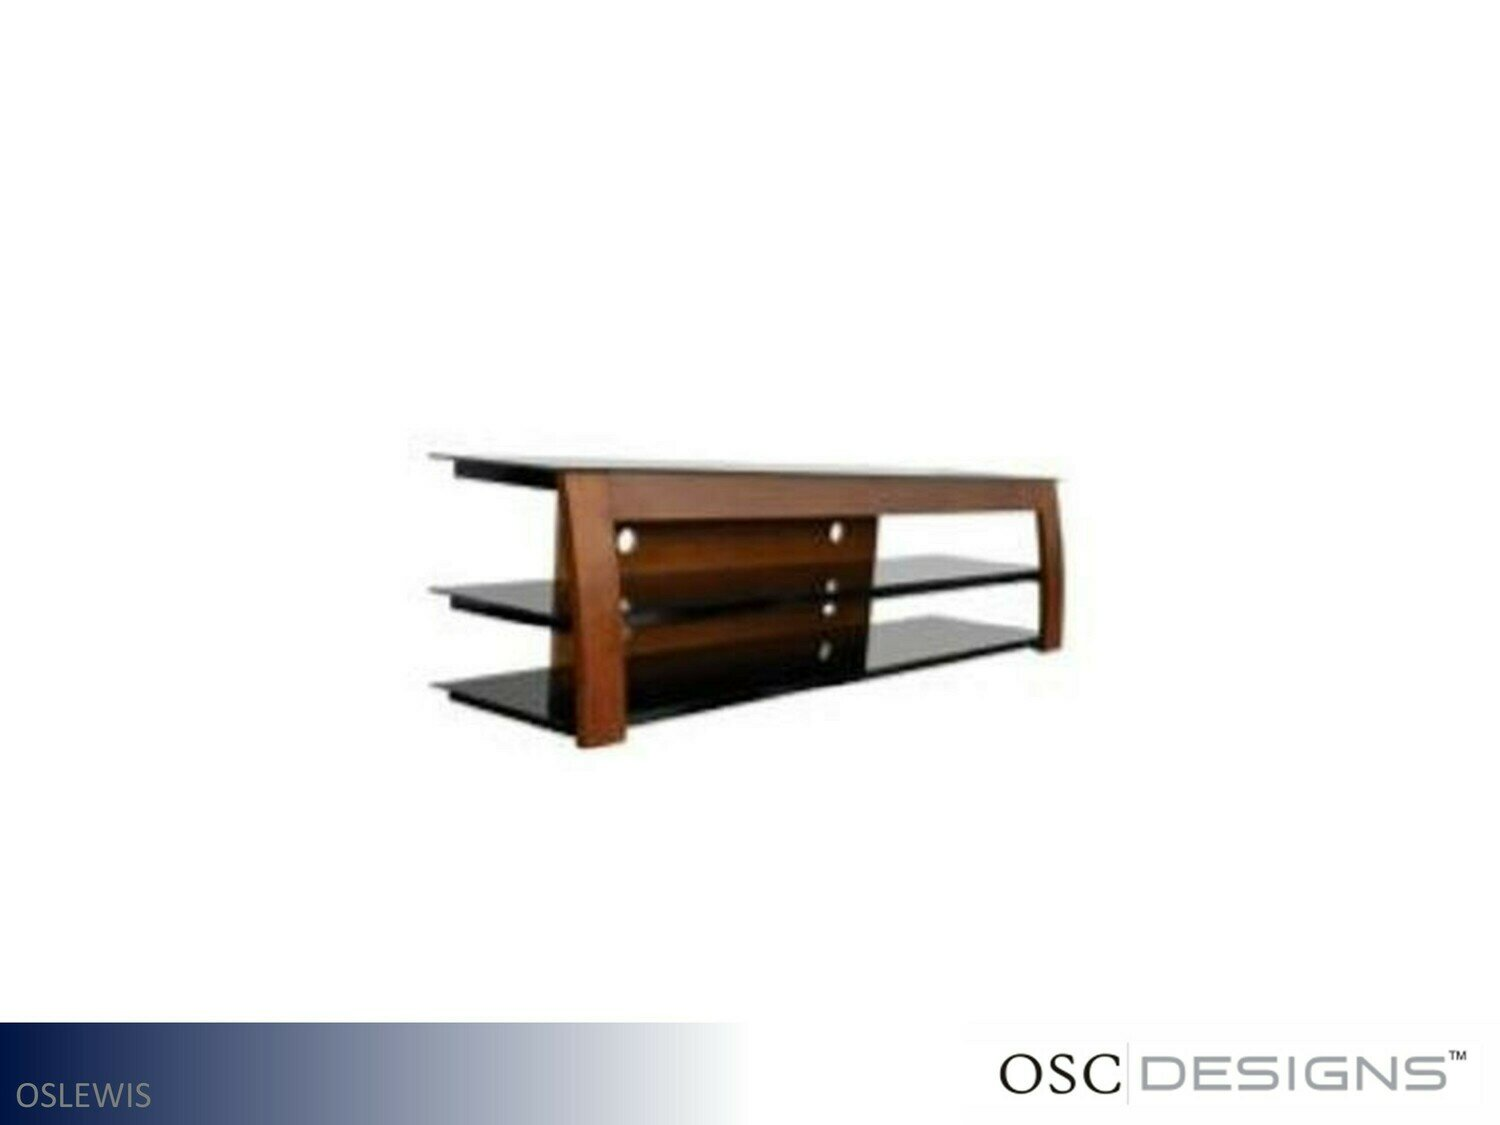 Metal-Glass TV Stand by OSC Designs